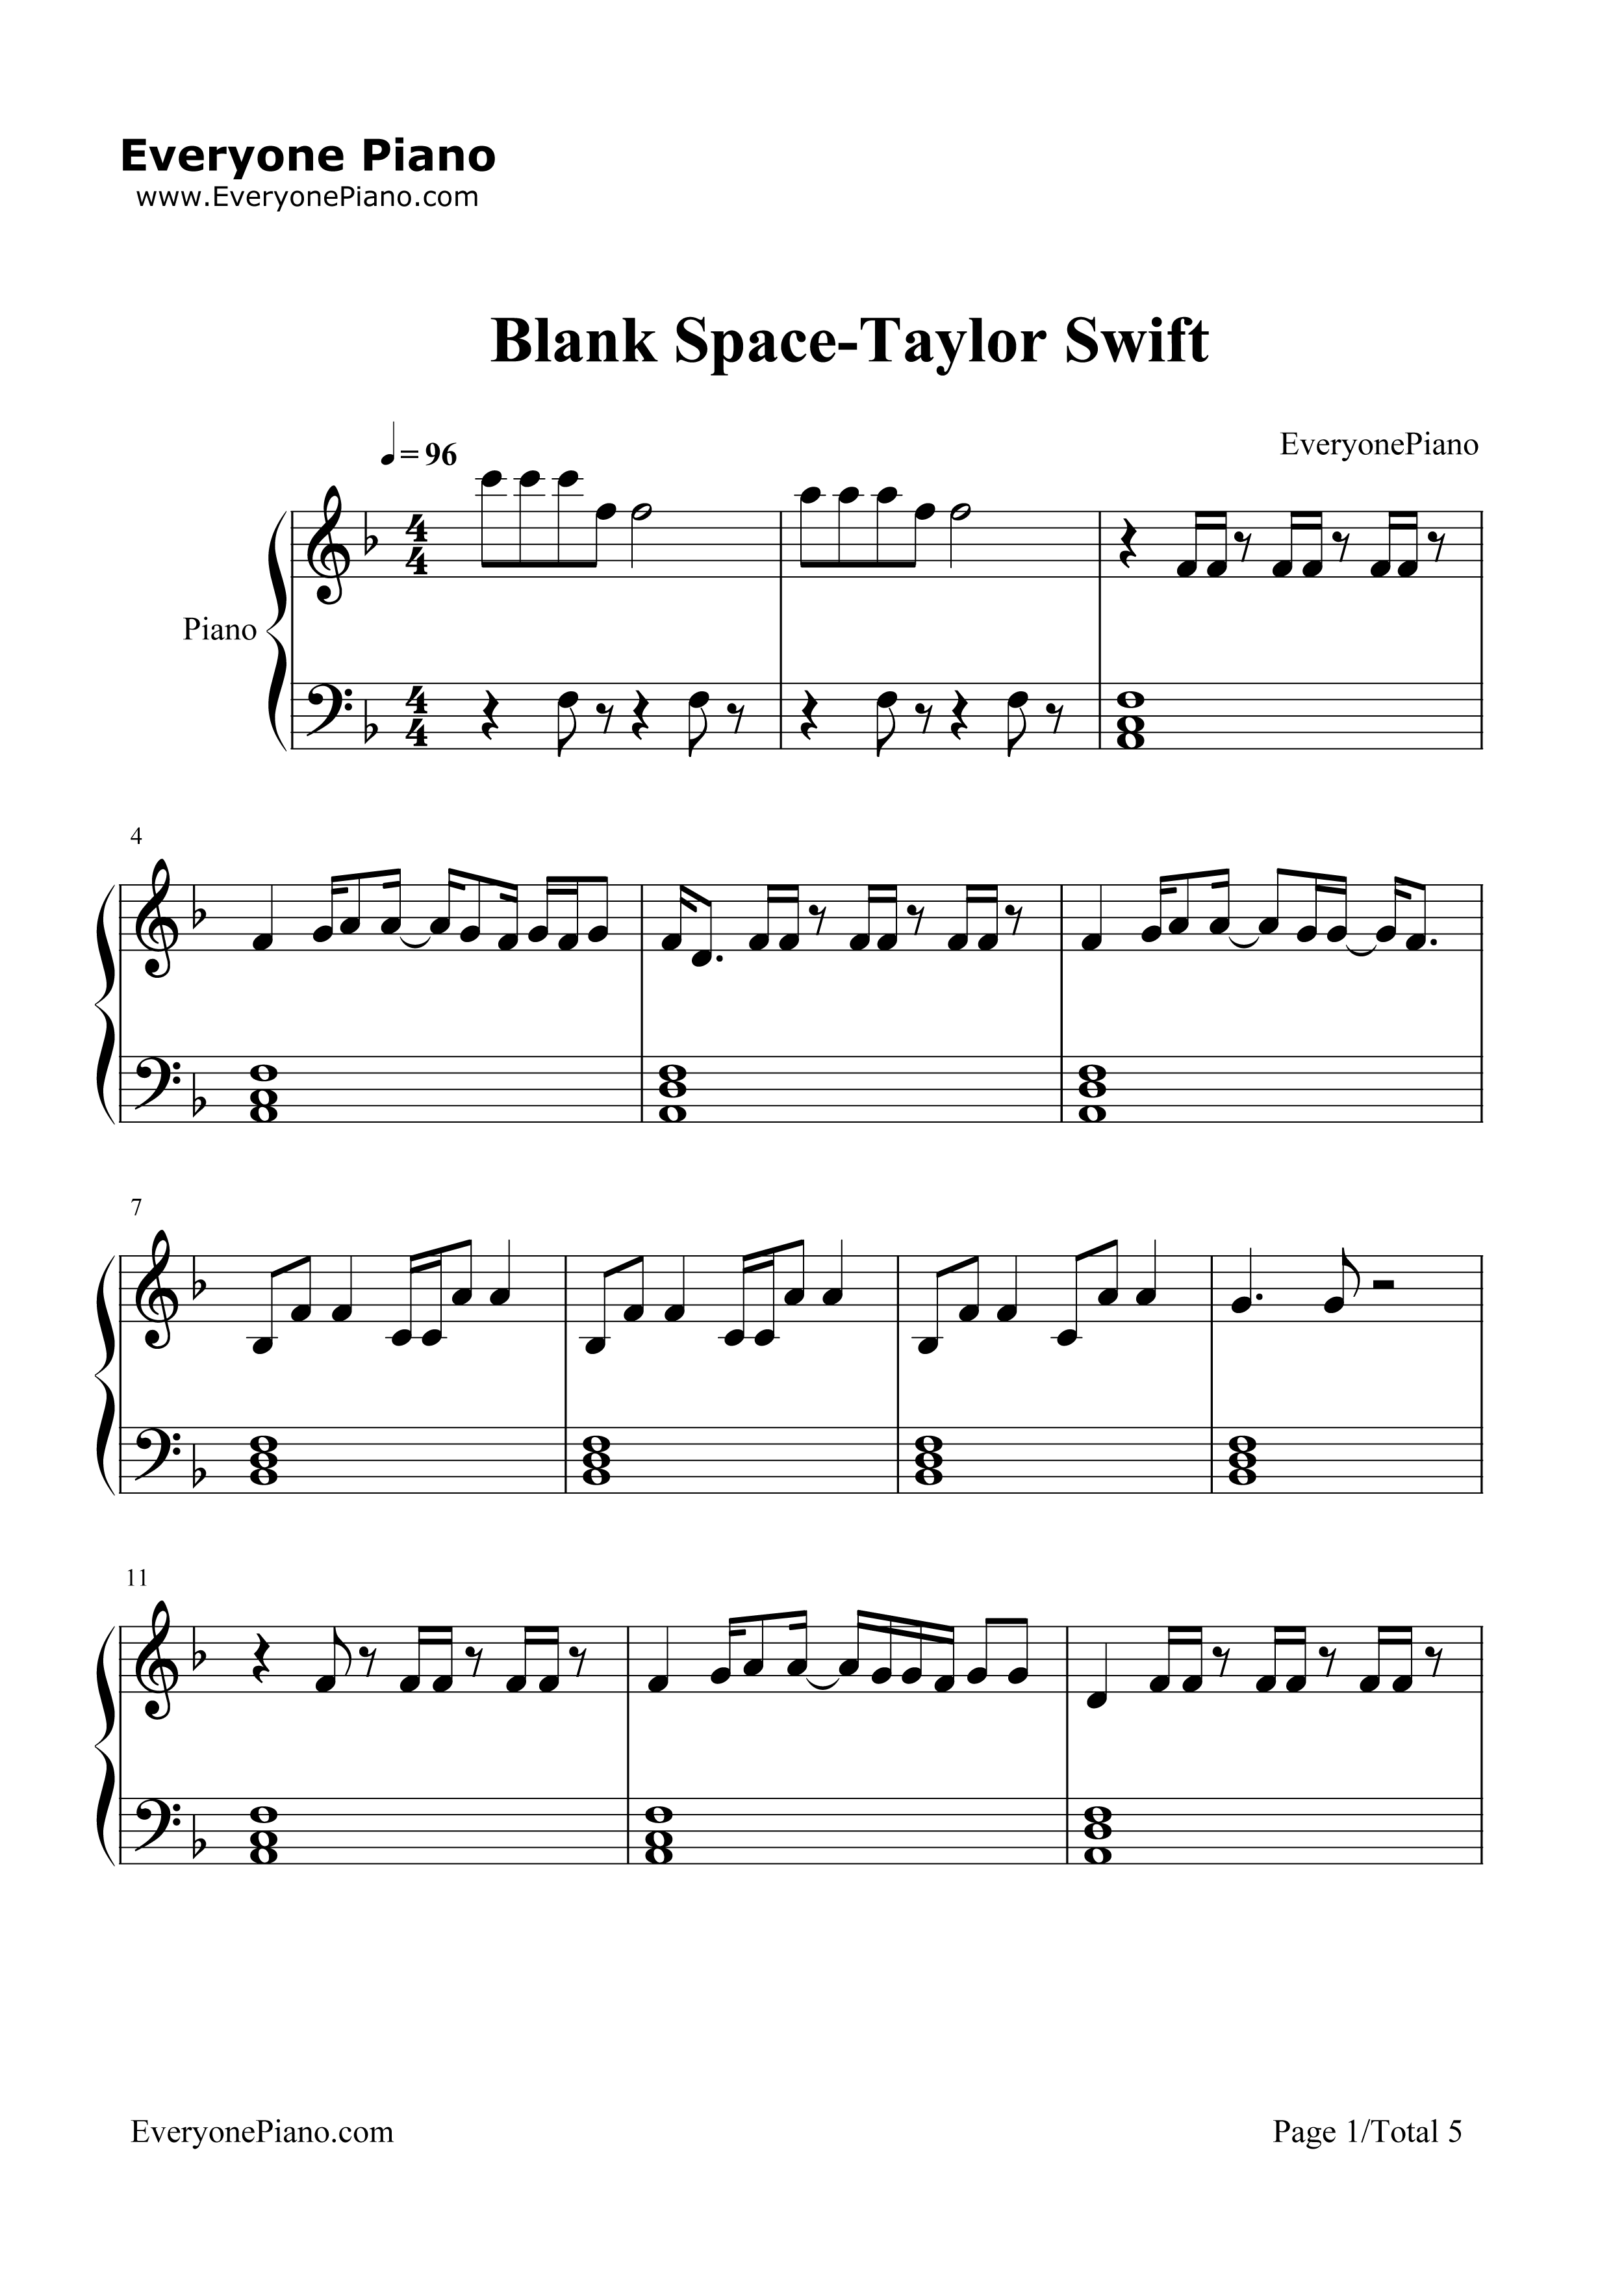 Blank space taylor swift stave preview 1 free piano sheet music